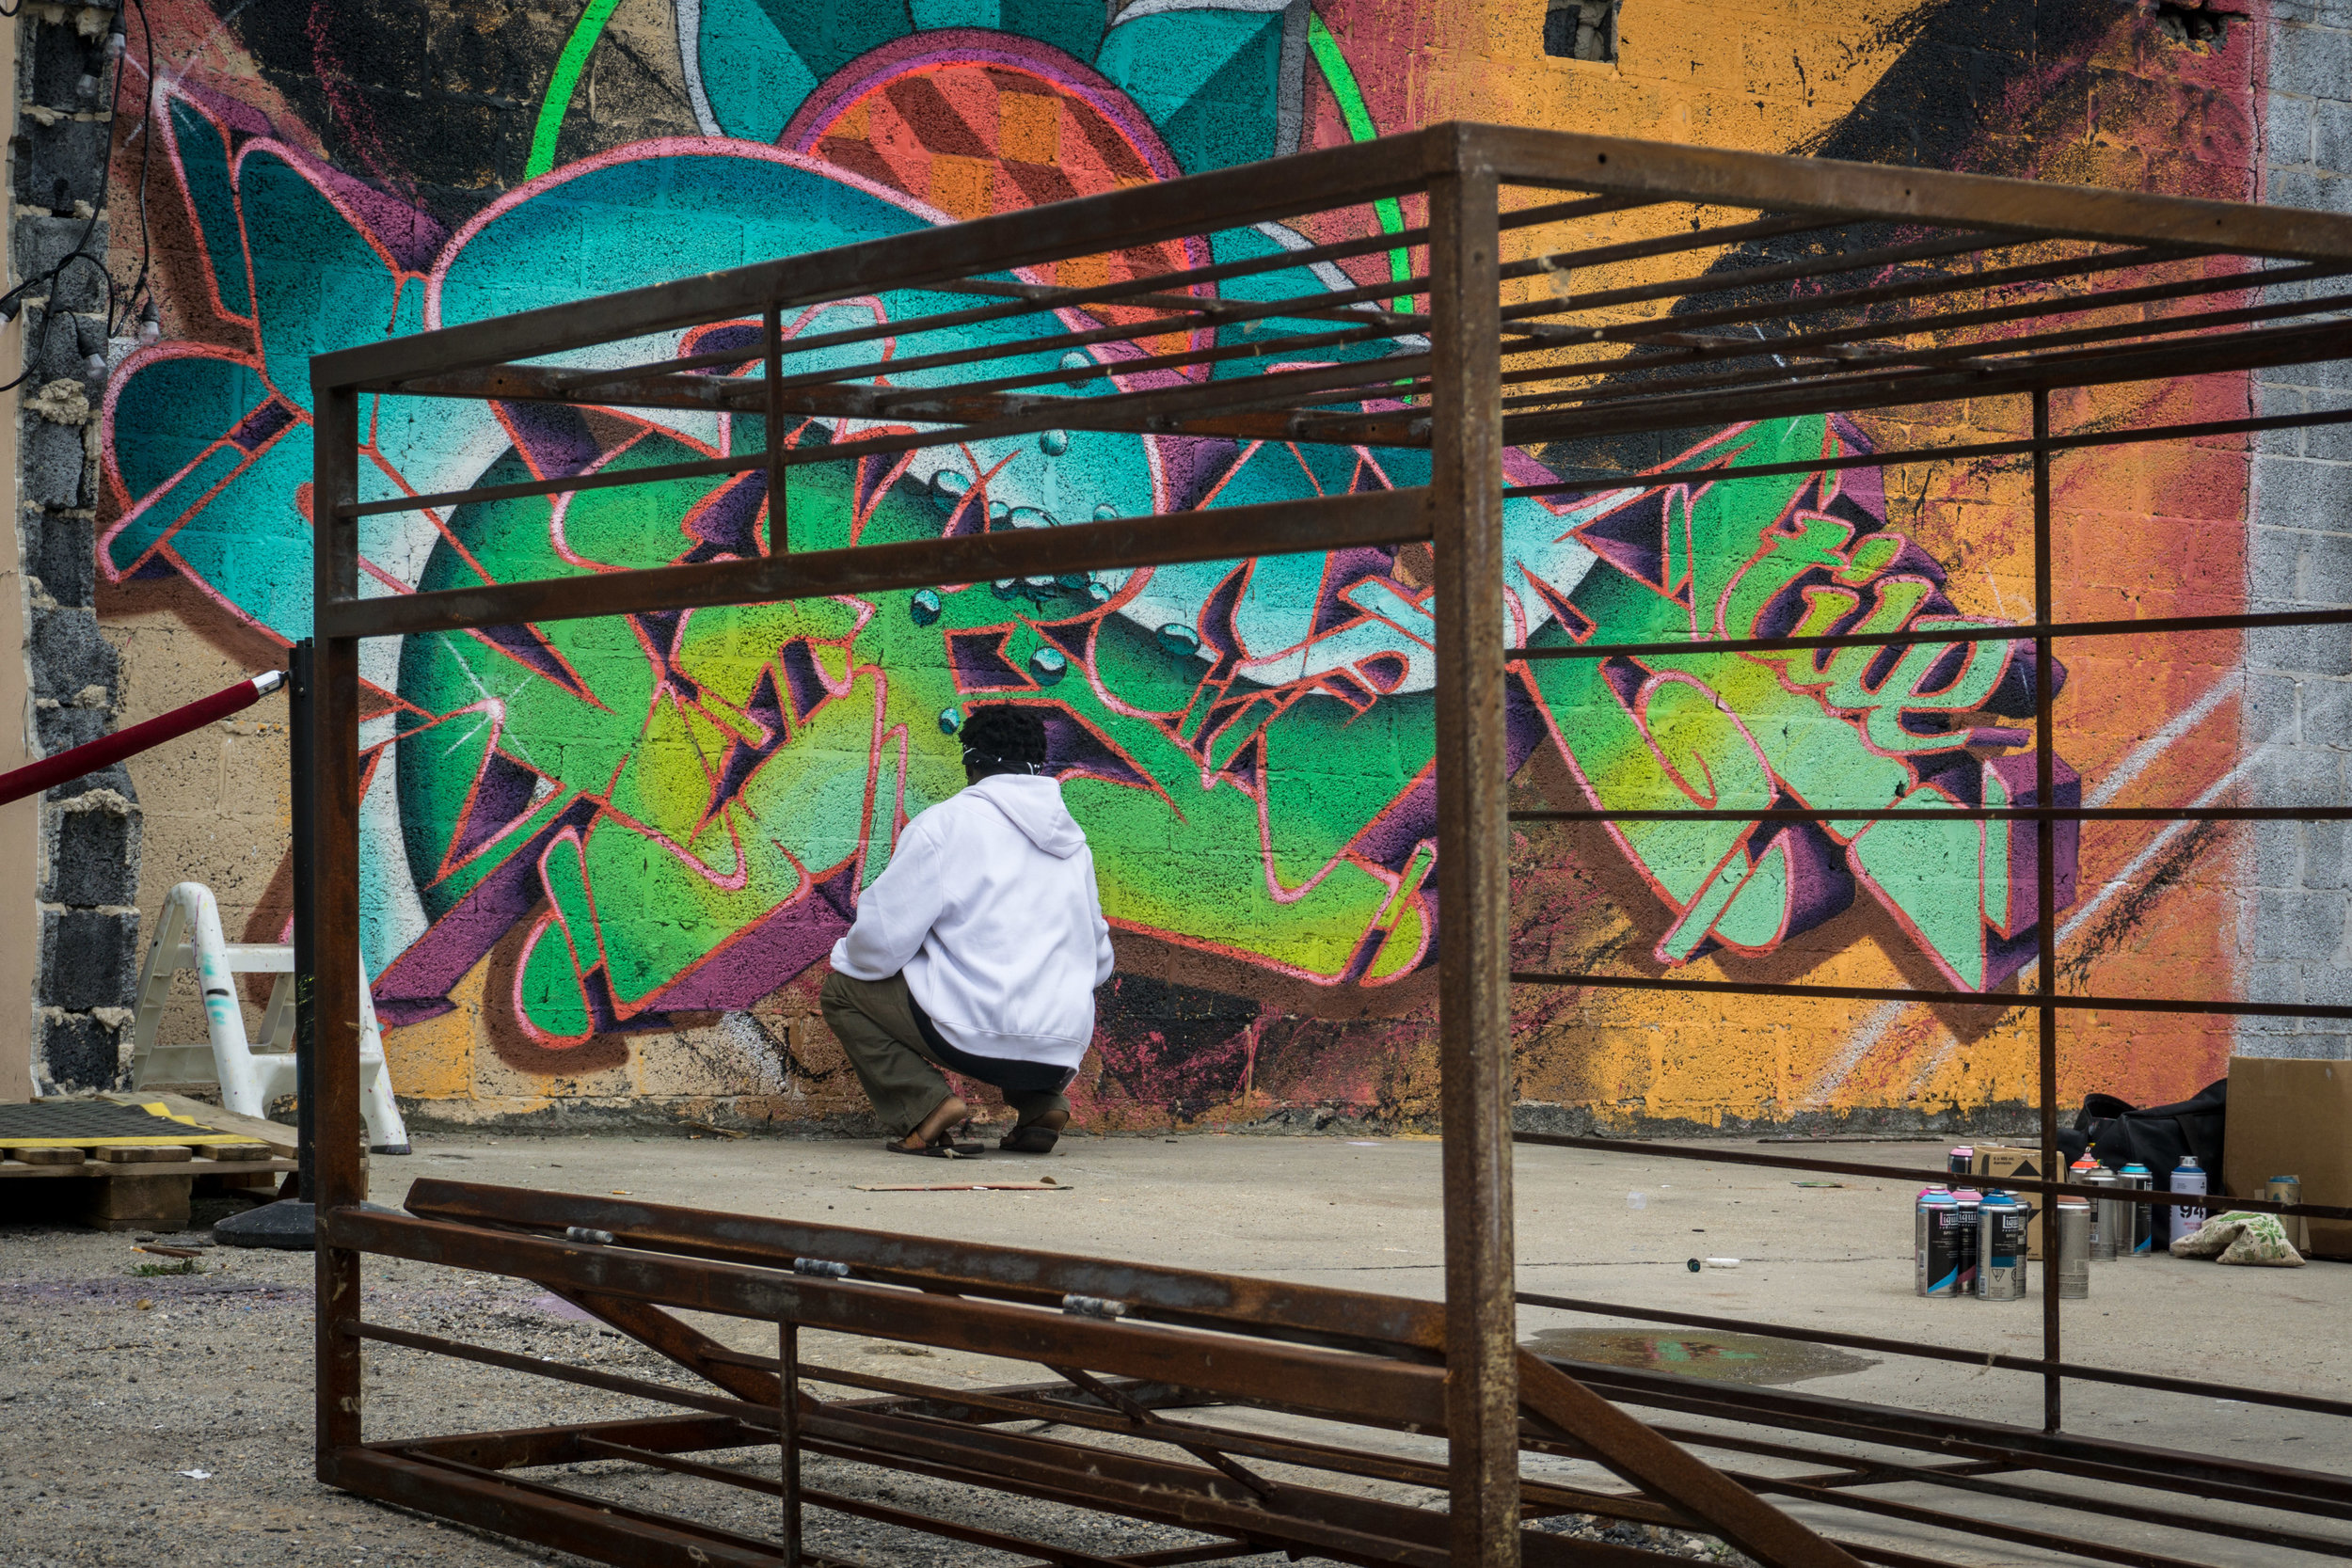 Graffiti artist, Versatile Vice (Vice Versa), brings life to a wall in the 3!5 courtyard.